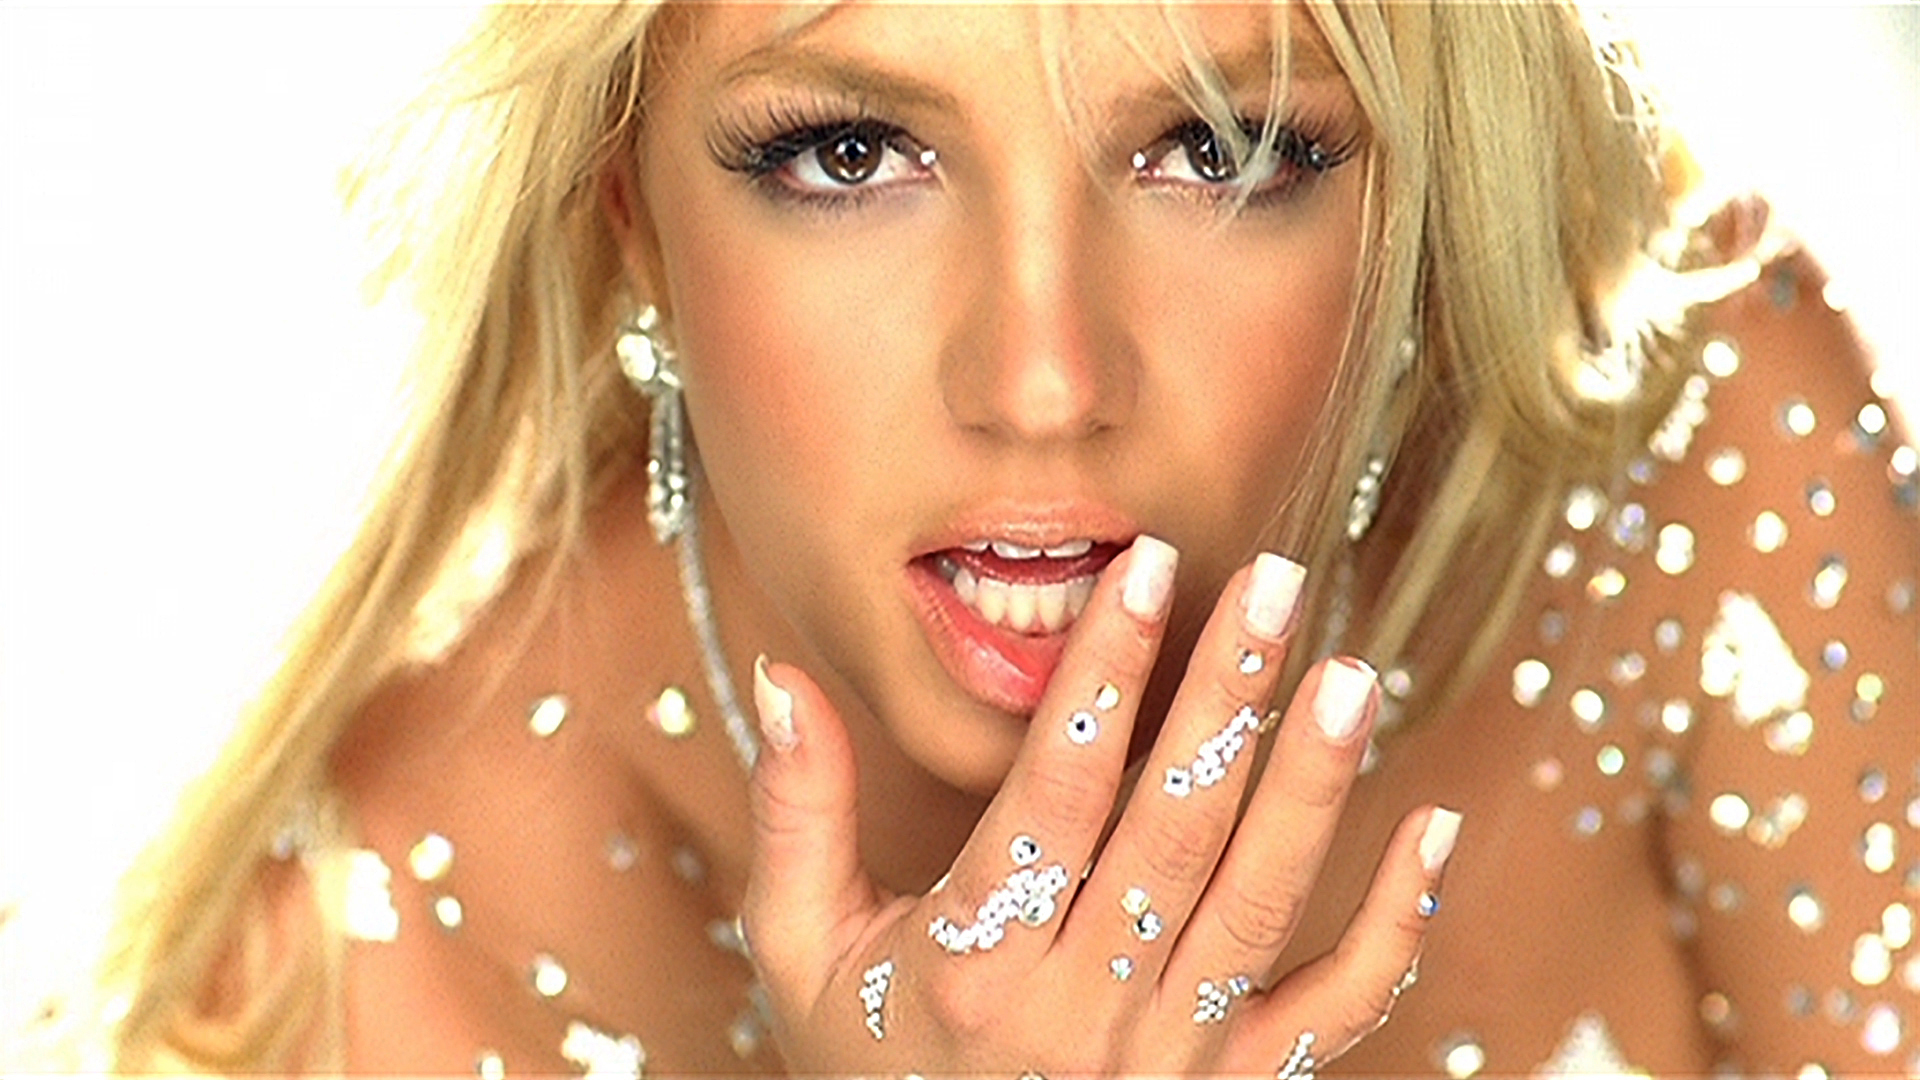 Britney Spears -Toxic Music Video LEAD